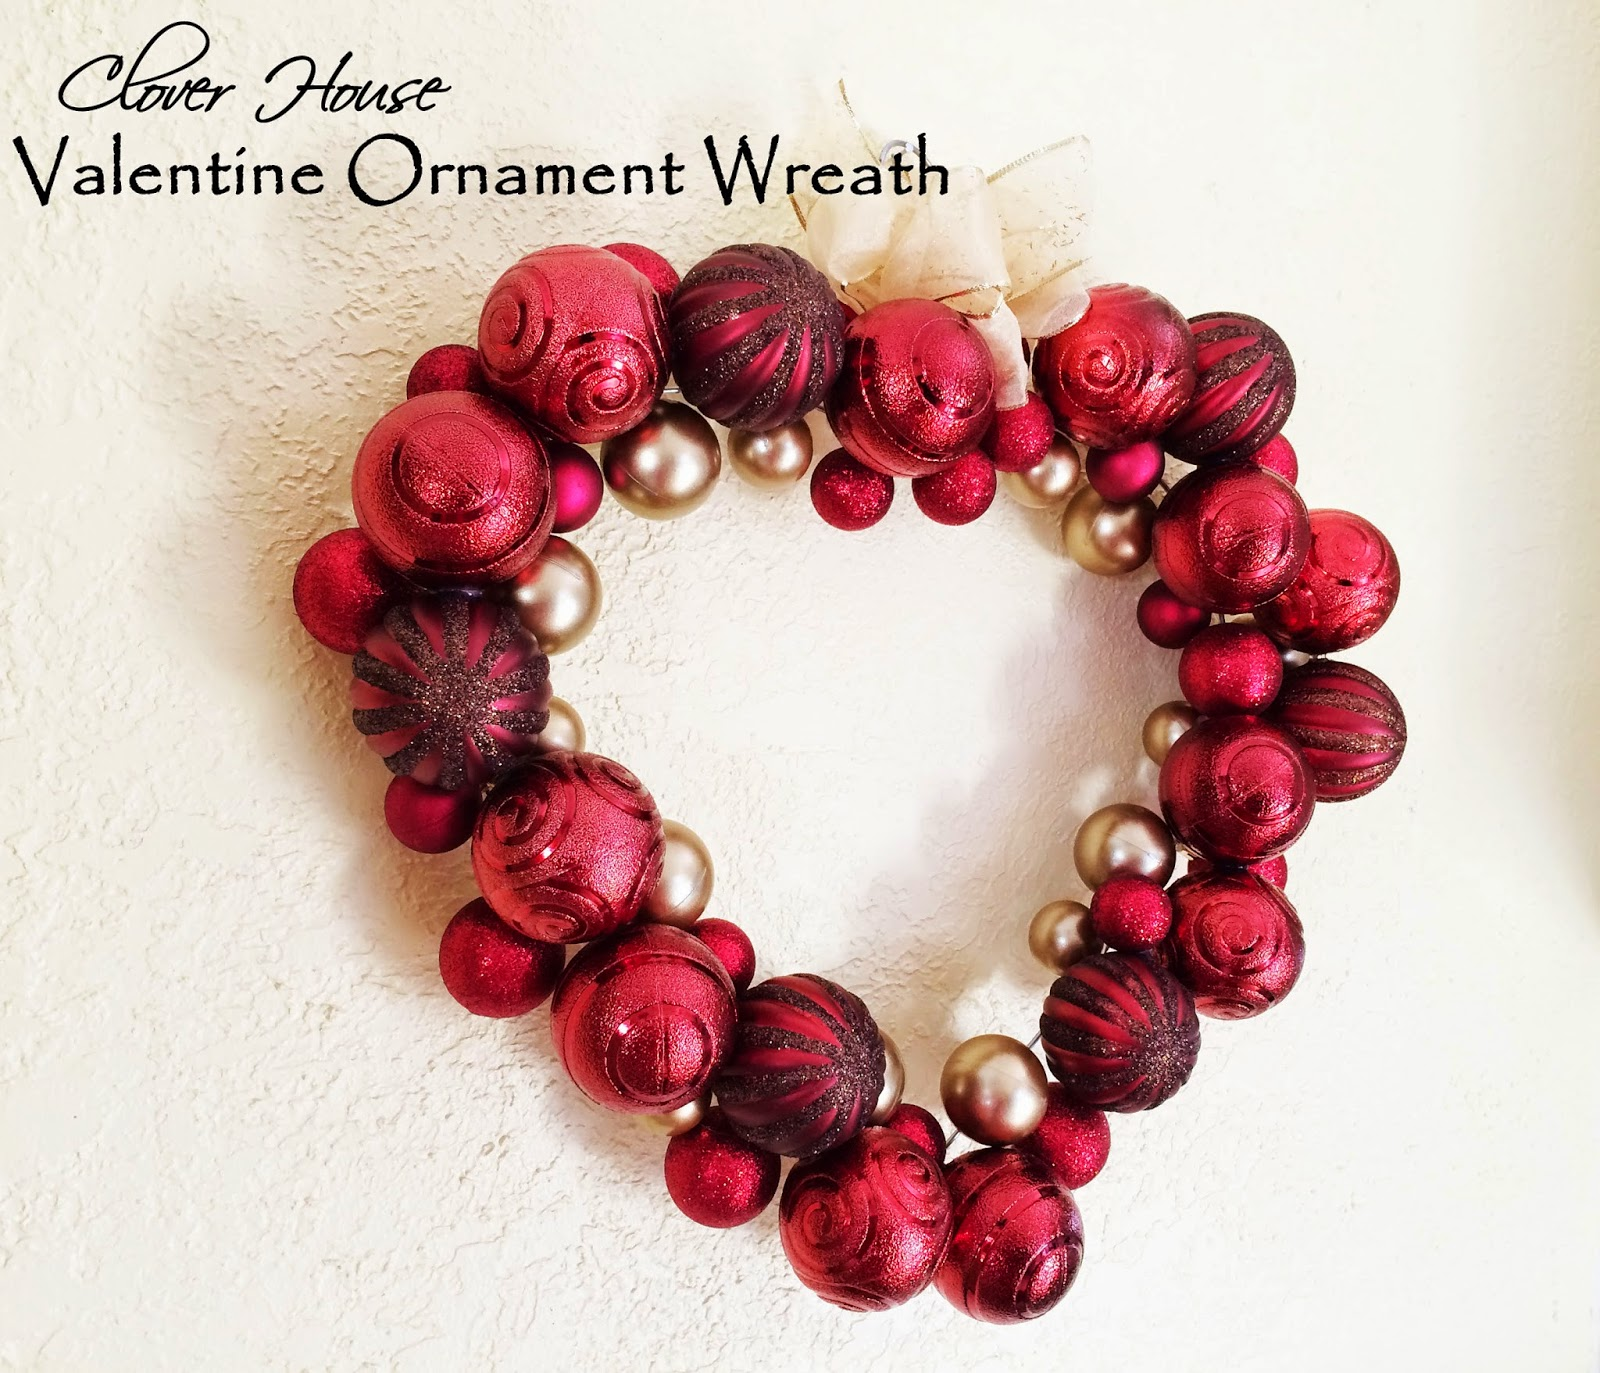 Valentine Ornament Wreath from Clover House